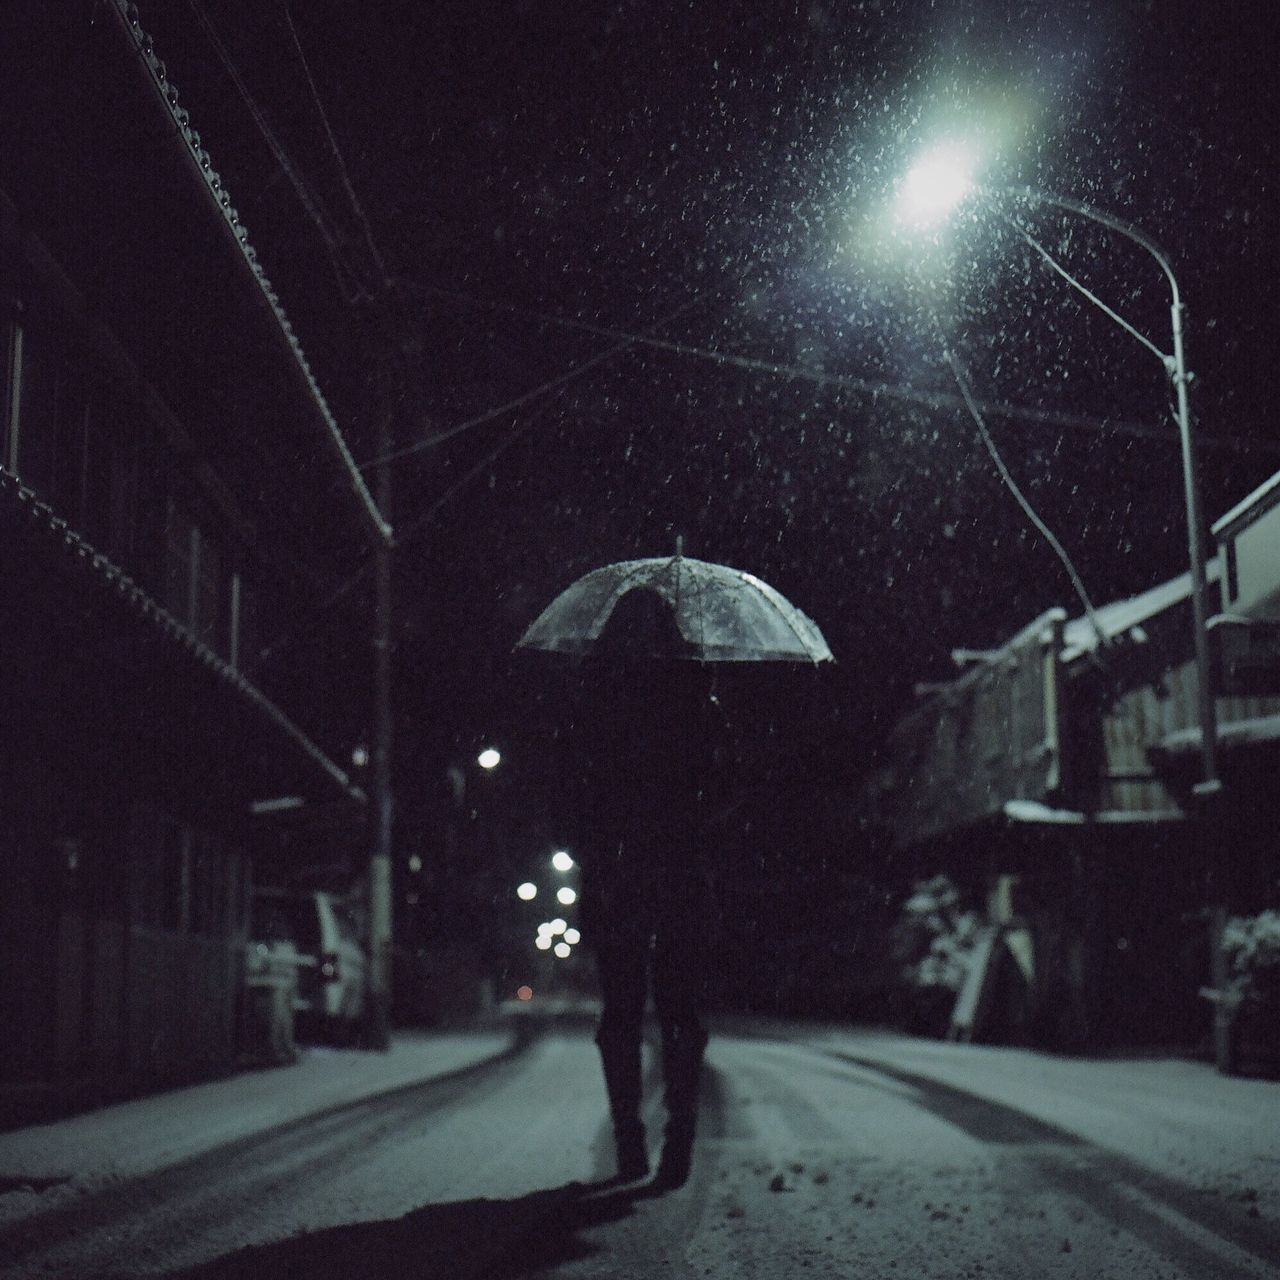 Full Length Rear View Of Woman With Umbrella Walking On Street At Night